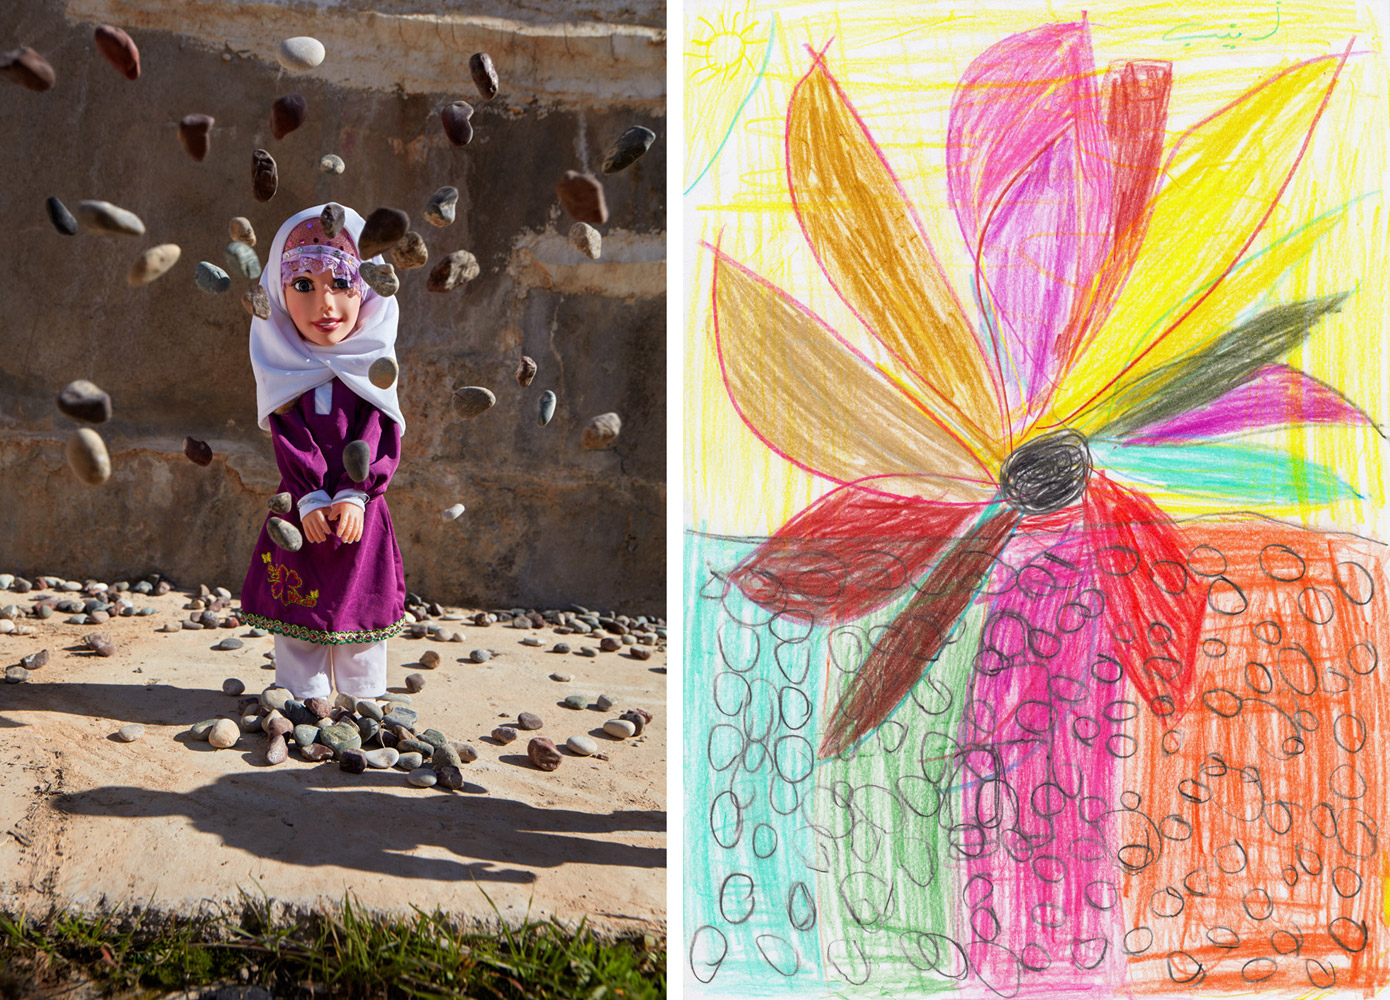 Stoning - Hassansham, Iraq2017It's not immediately apparent from her drawing, but an Iraqi girl named Zaina is sharing an account of watching a woman being stoned to death for not wearing approved attire under ISIS rule. In an art-based interview conducted with support from TdH Italia inside an IDP Camp near Mosul, Zaina first drew a woman at the bottom of the page, the outline of her can still be seen despite the stones that Zaina later covered her with. Revealing the story to Art Therapist Myra Saad, Zaina said that she'd like to give the stoned woman a flower and proceeded to draw one on top and fill in colors to cover up the scene of death. The resulting photo focused on the stoning and was created in the deserted and largely destroyed town just outside of the girl's camp, located approximately 30km from Mosul.